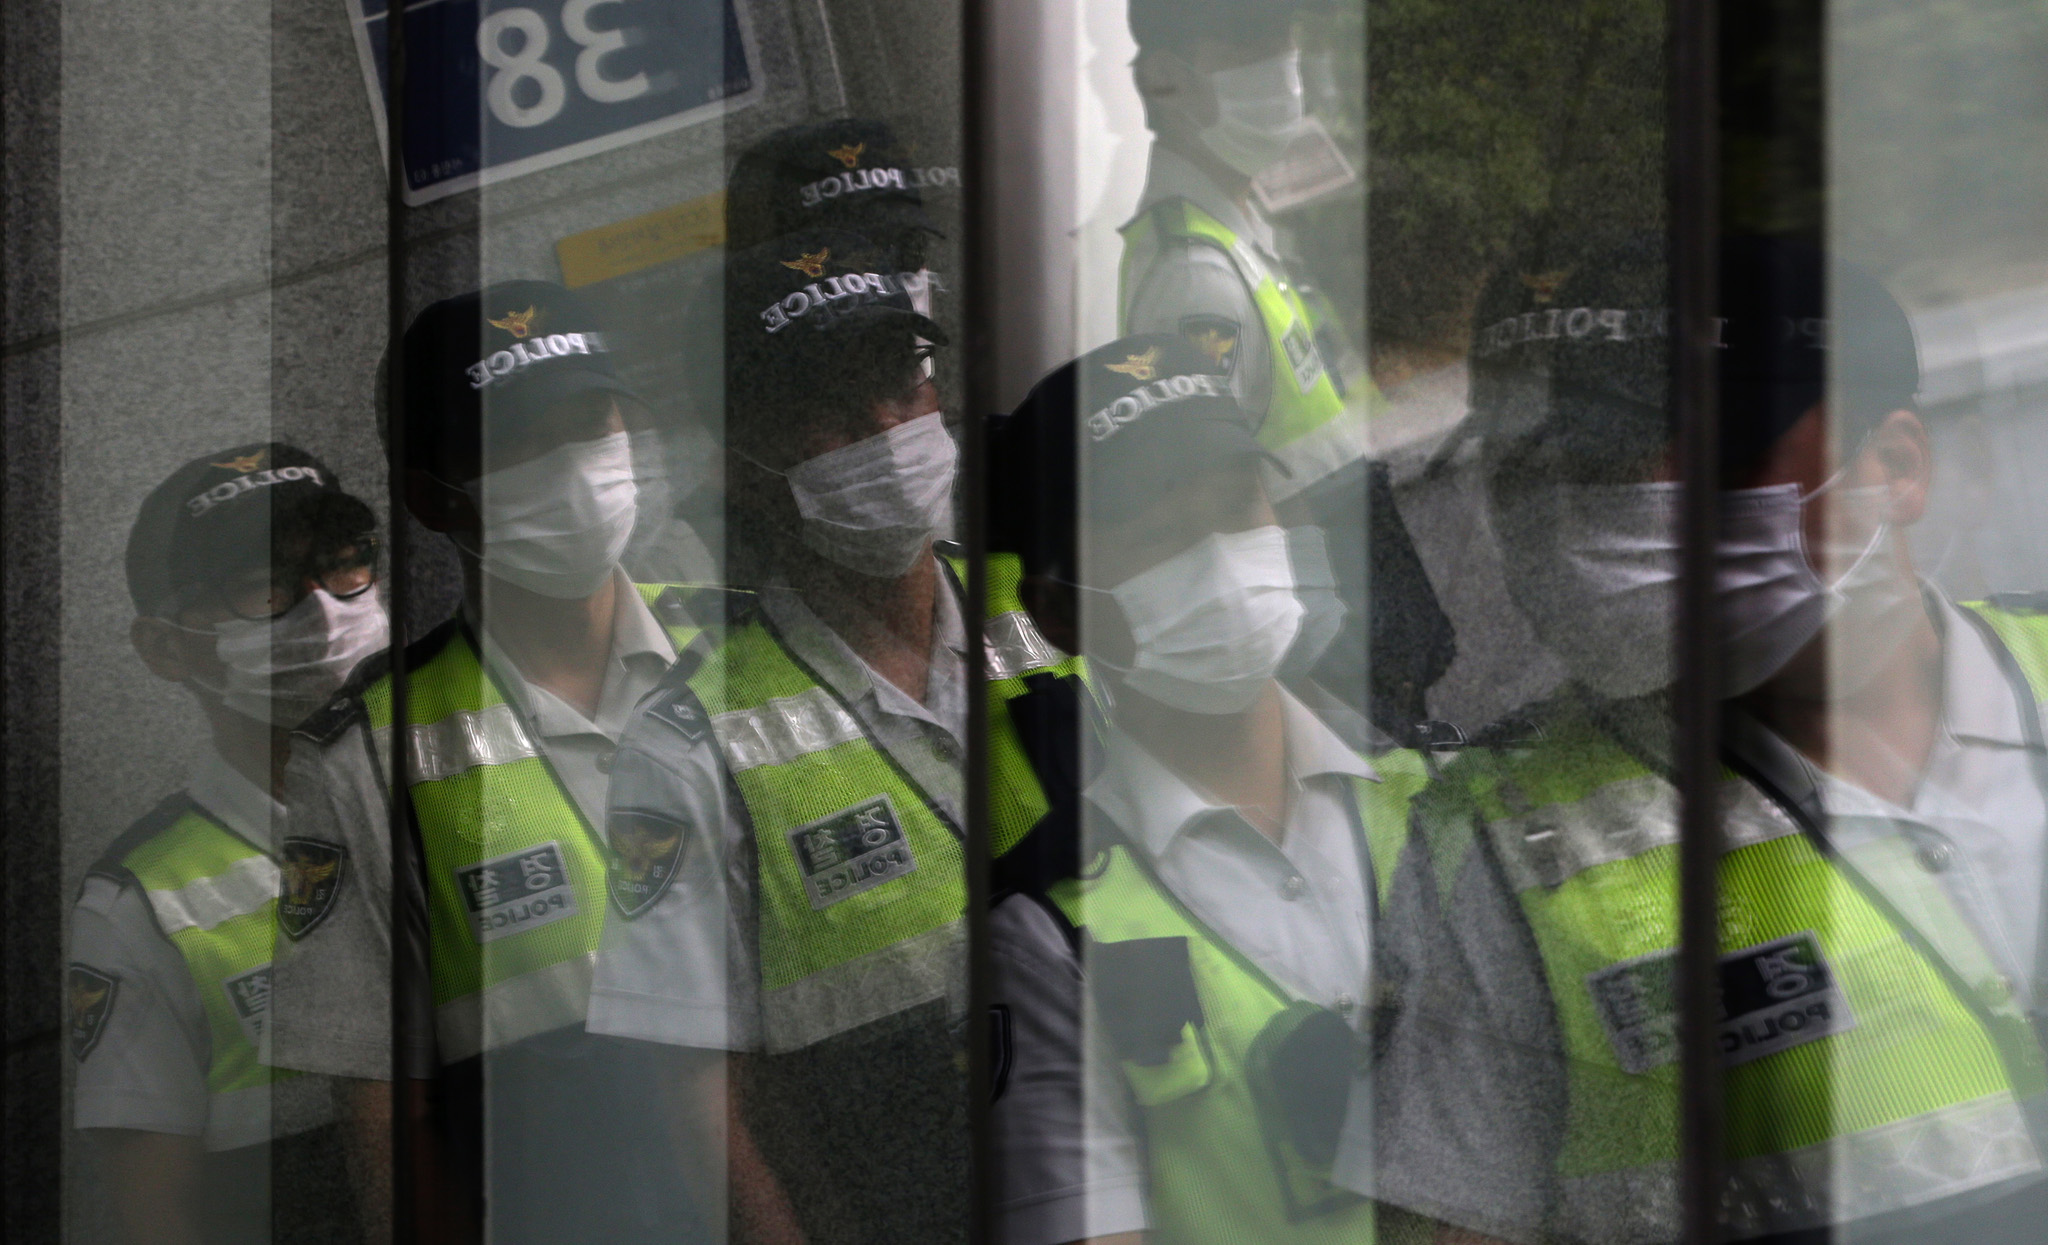 Police officers wearing masks as a precaution against Middle East Respiratory Syndrome (MERS) are reflected on windows in Seoul, South Korea.